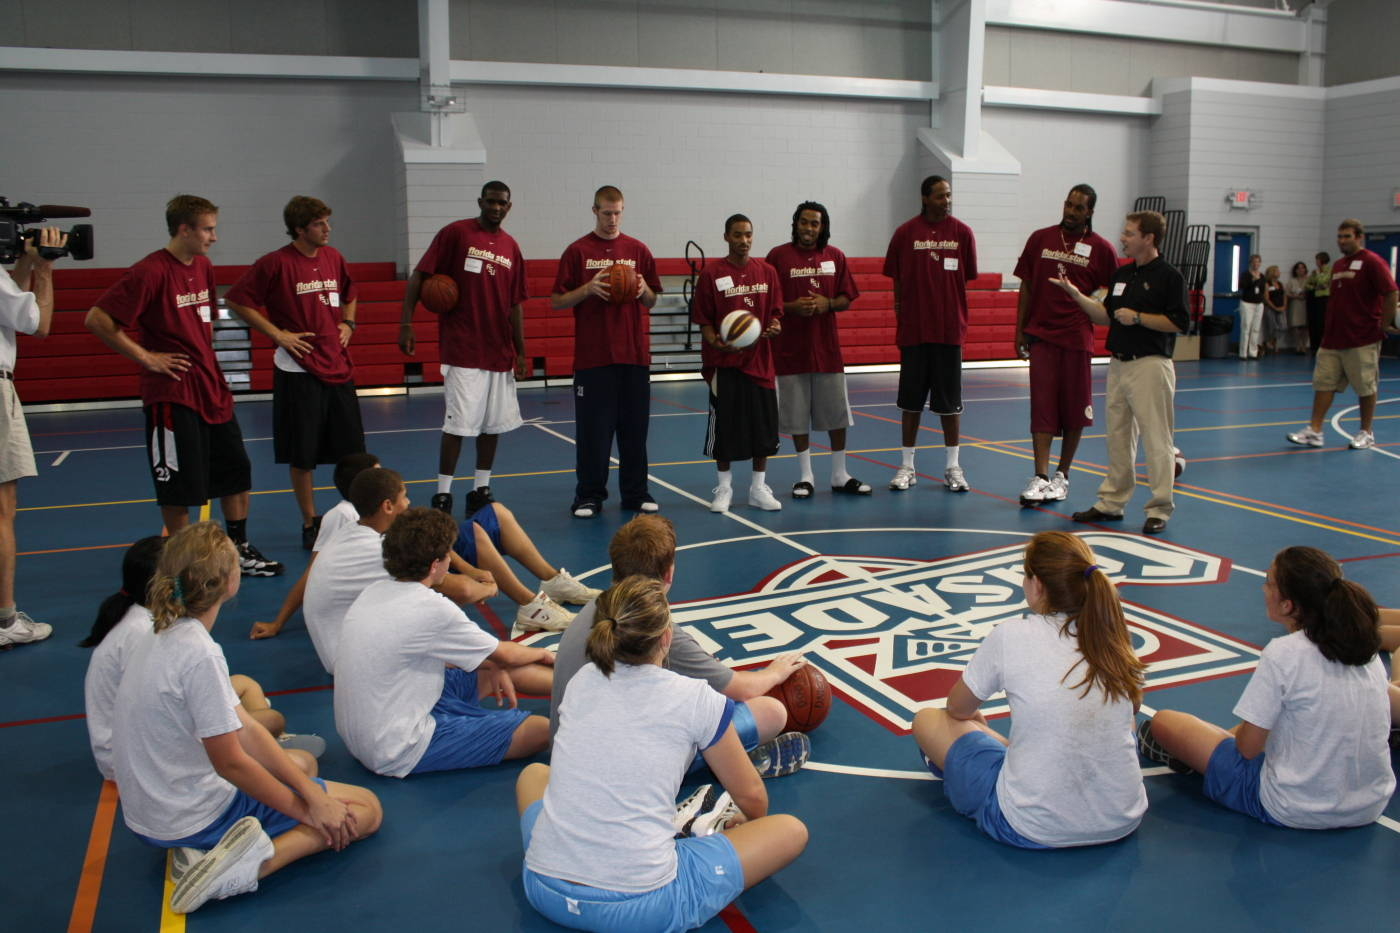 Men's Basketball Community Service At Holy Comforter School In Tallahassee